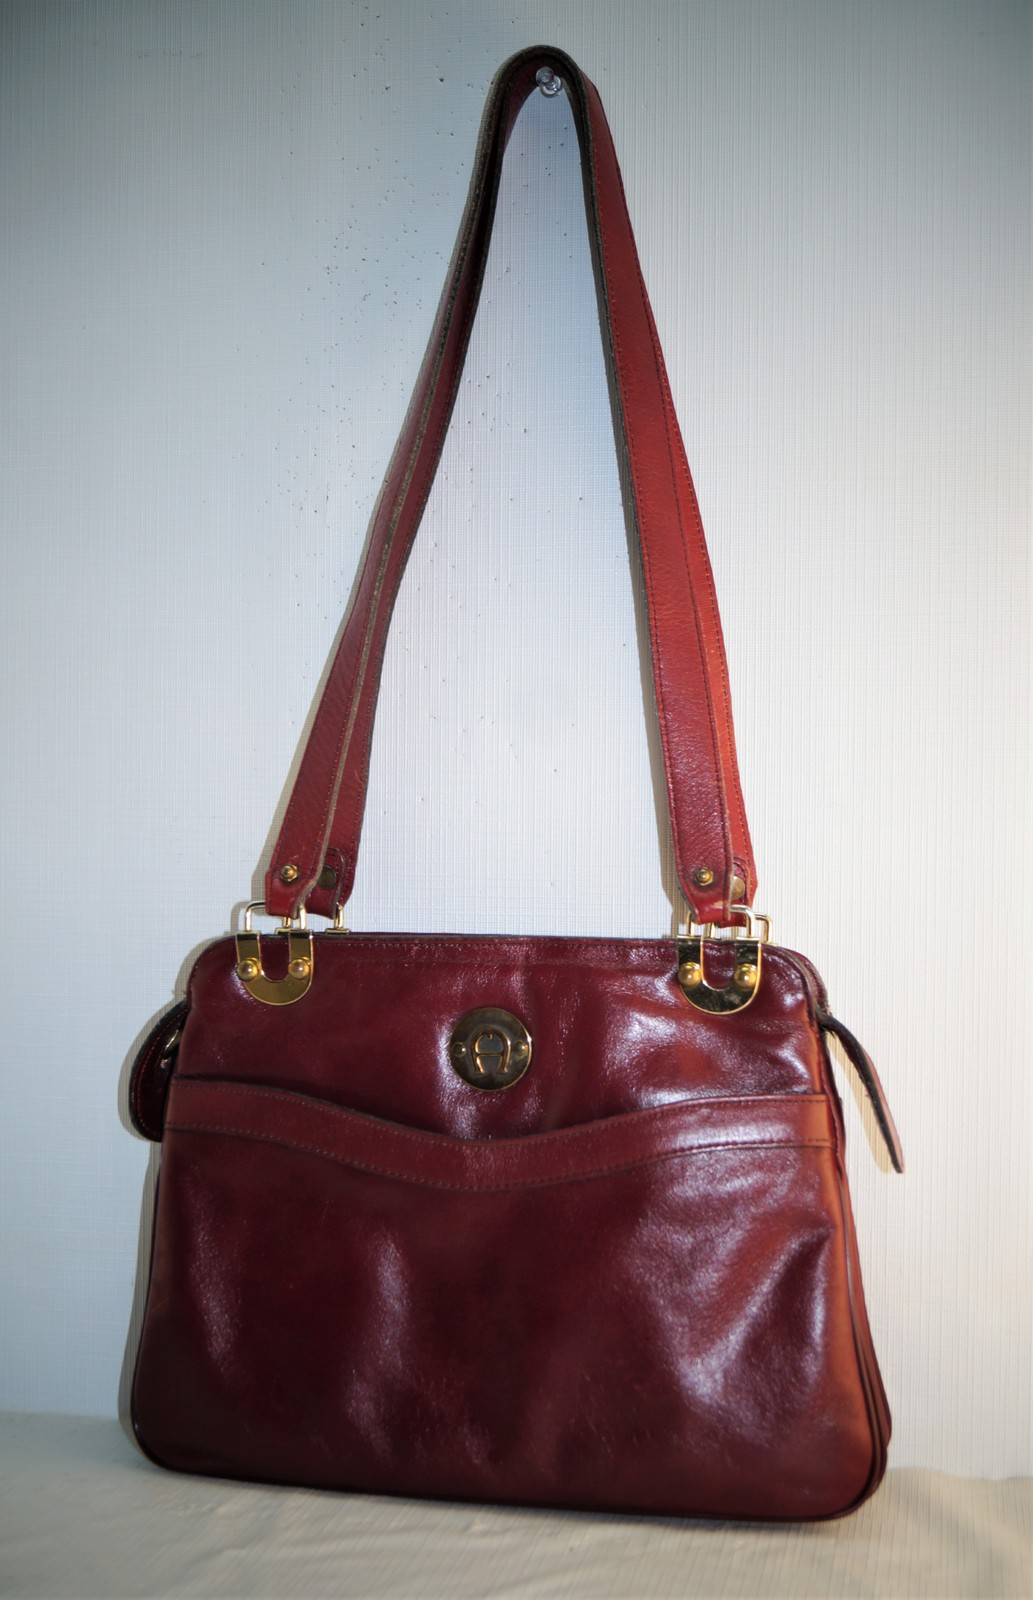 Dsc02247. Dsc02247. Previous. Vintage Etienne Aigner Burgundy Red Leather  Shoulder Bag Organizer Purse Pockets 0de1eb56df49b